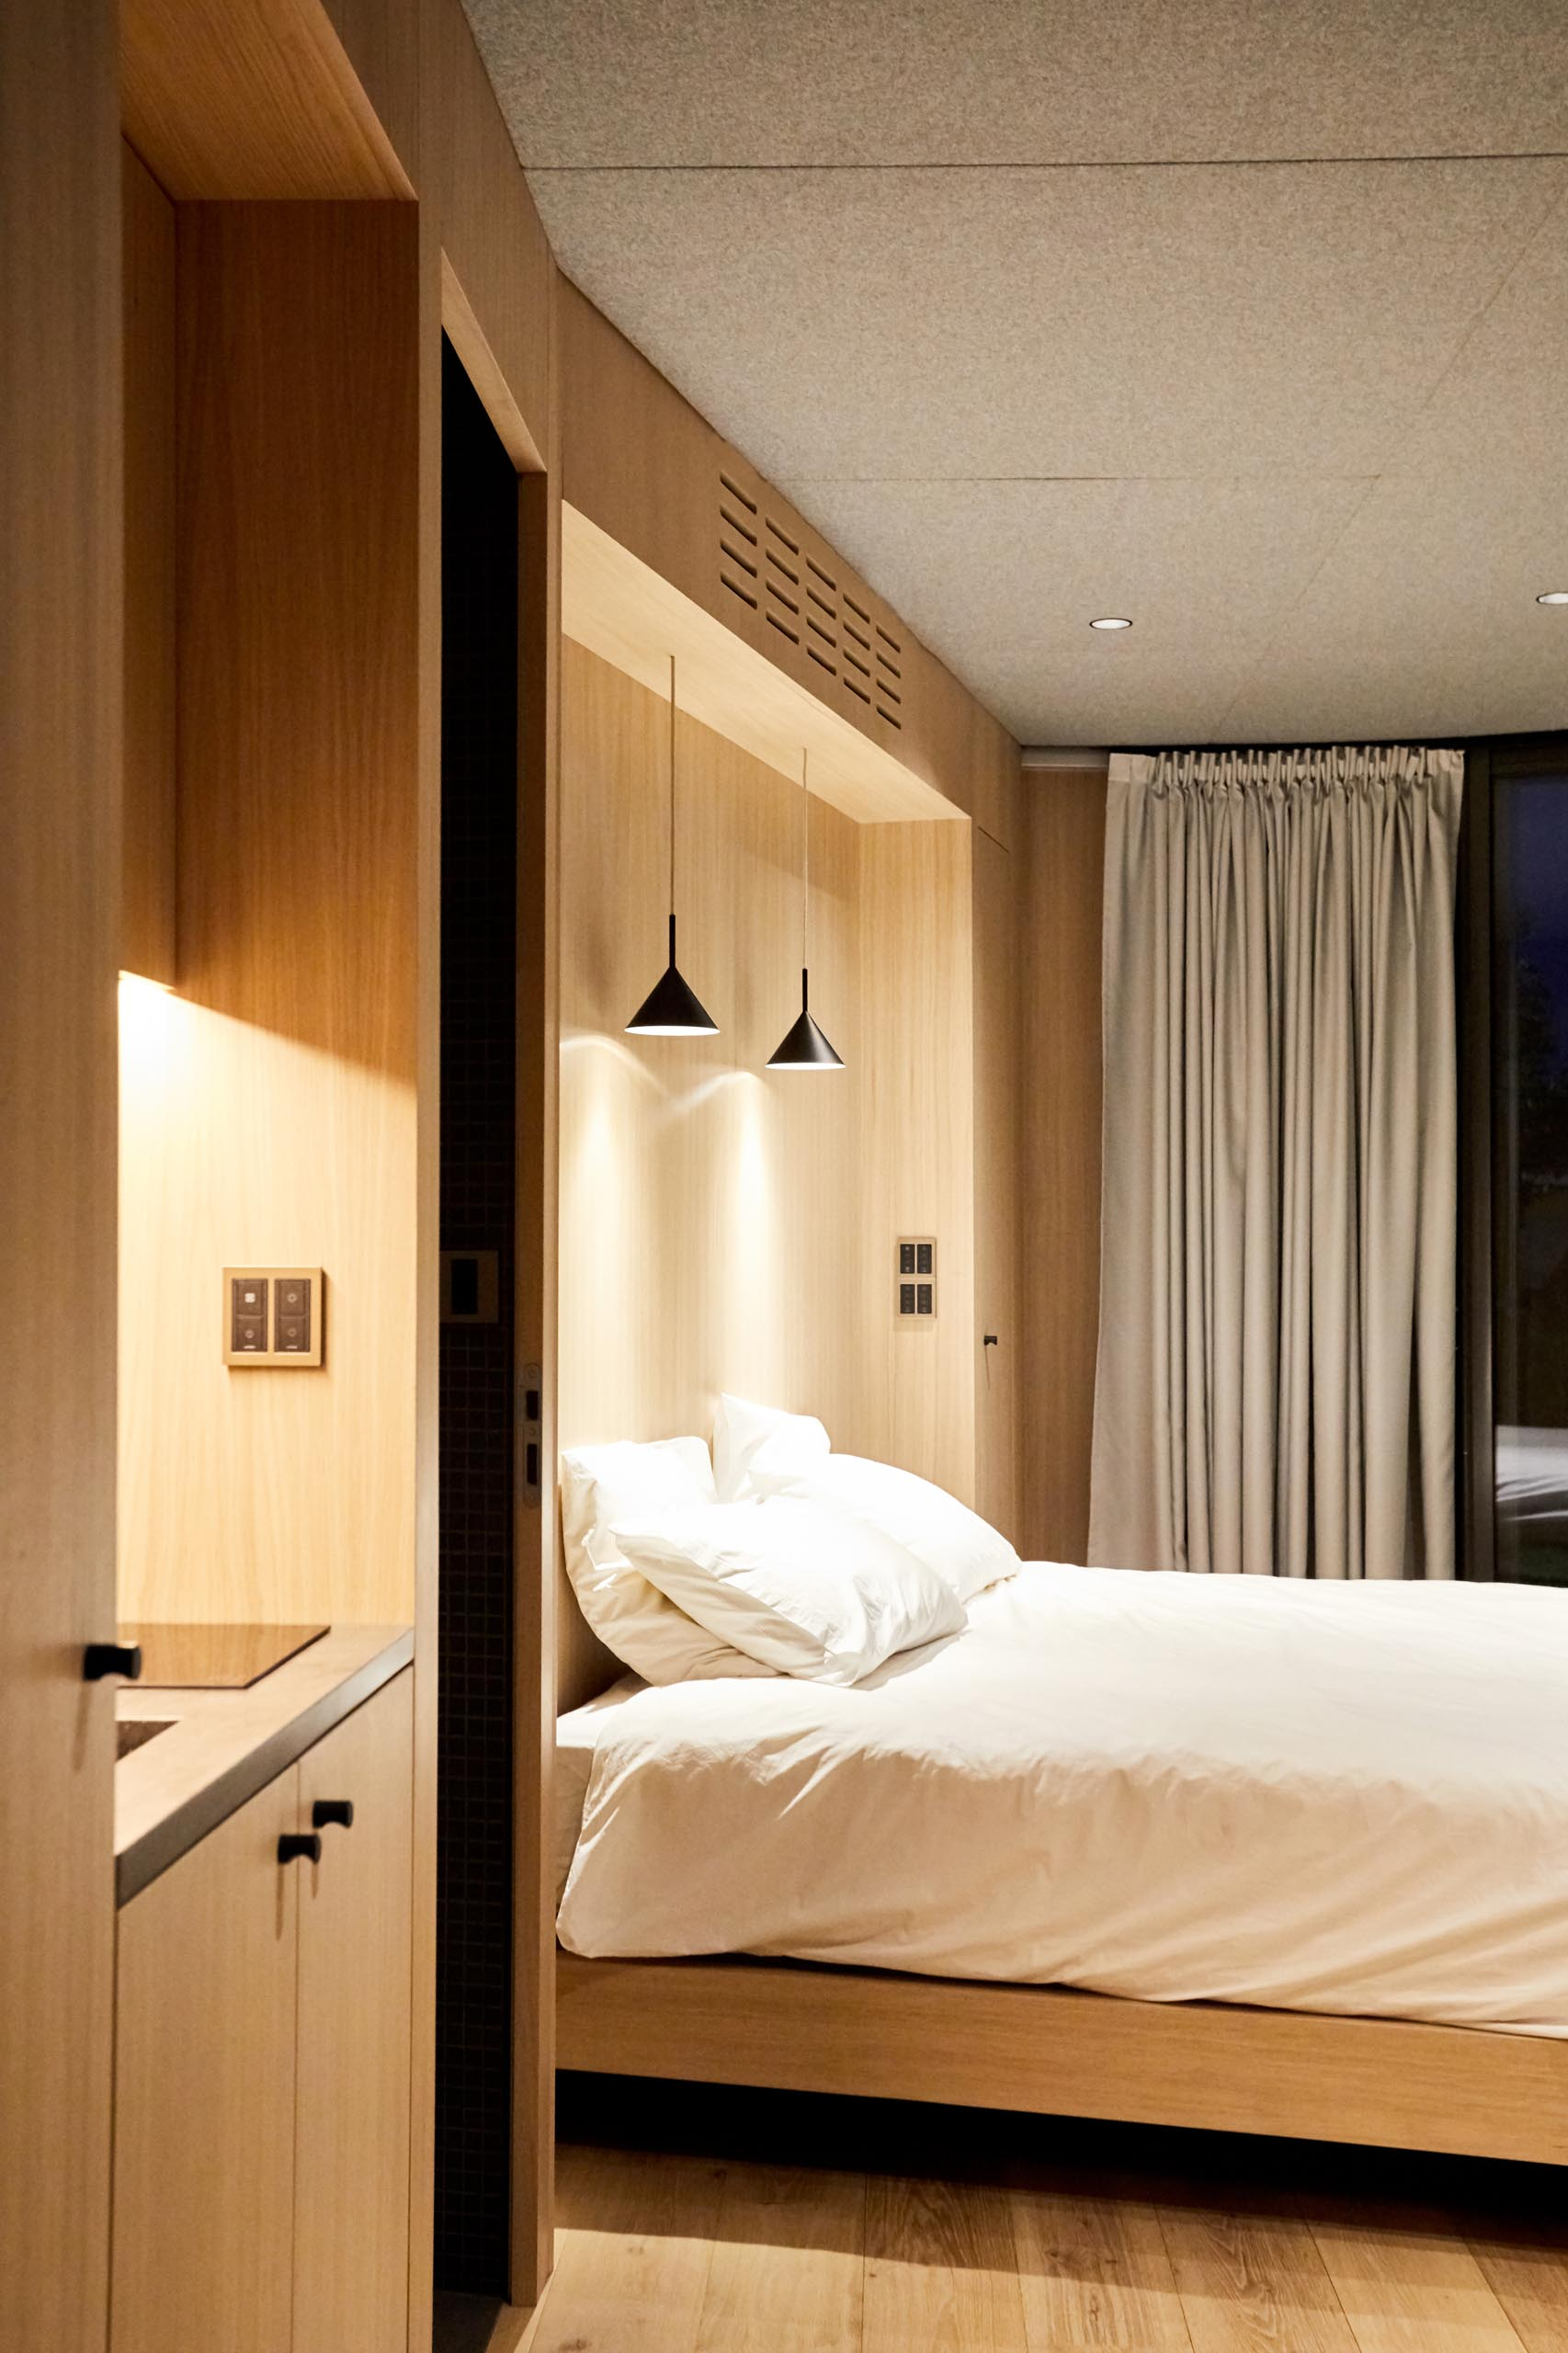 Inside the LumiPod, there's a bedroom, a kitchen area, a dining area, a bathroom, and a built-in wardrobe.